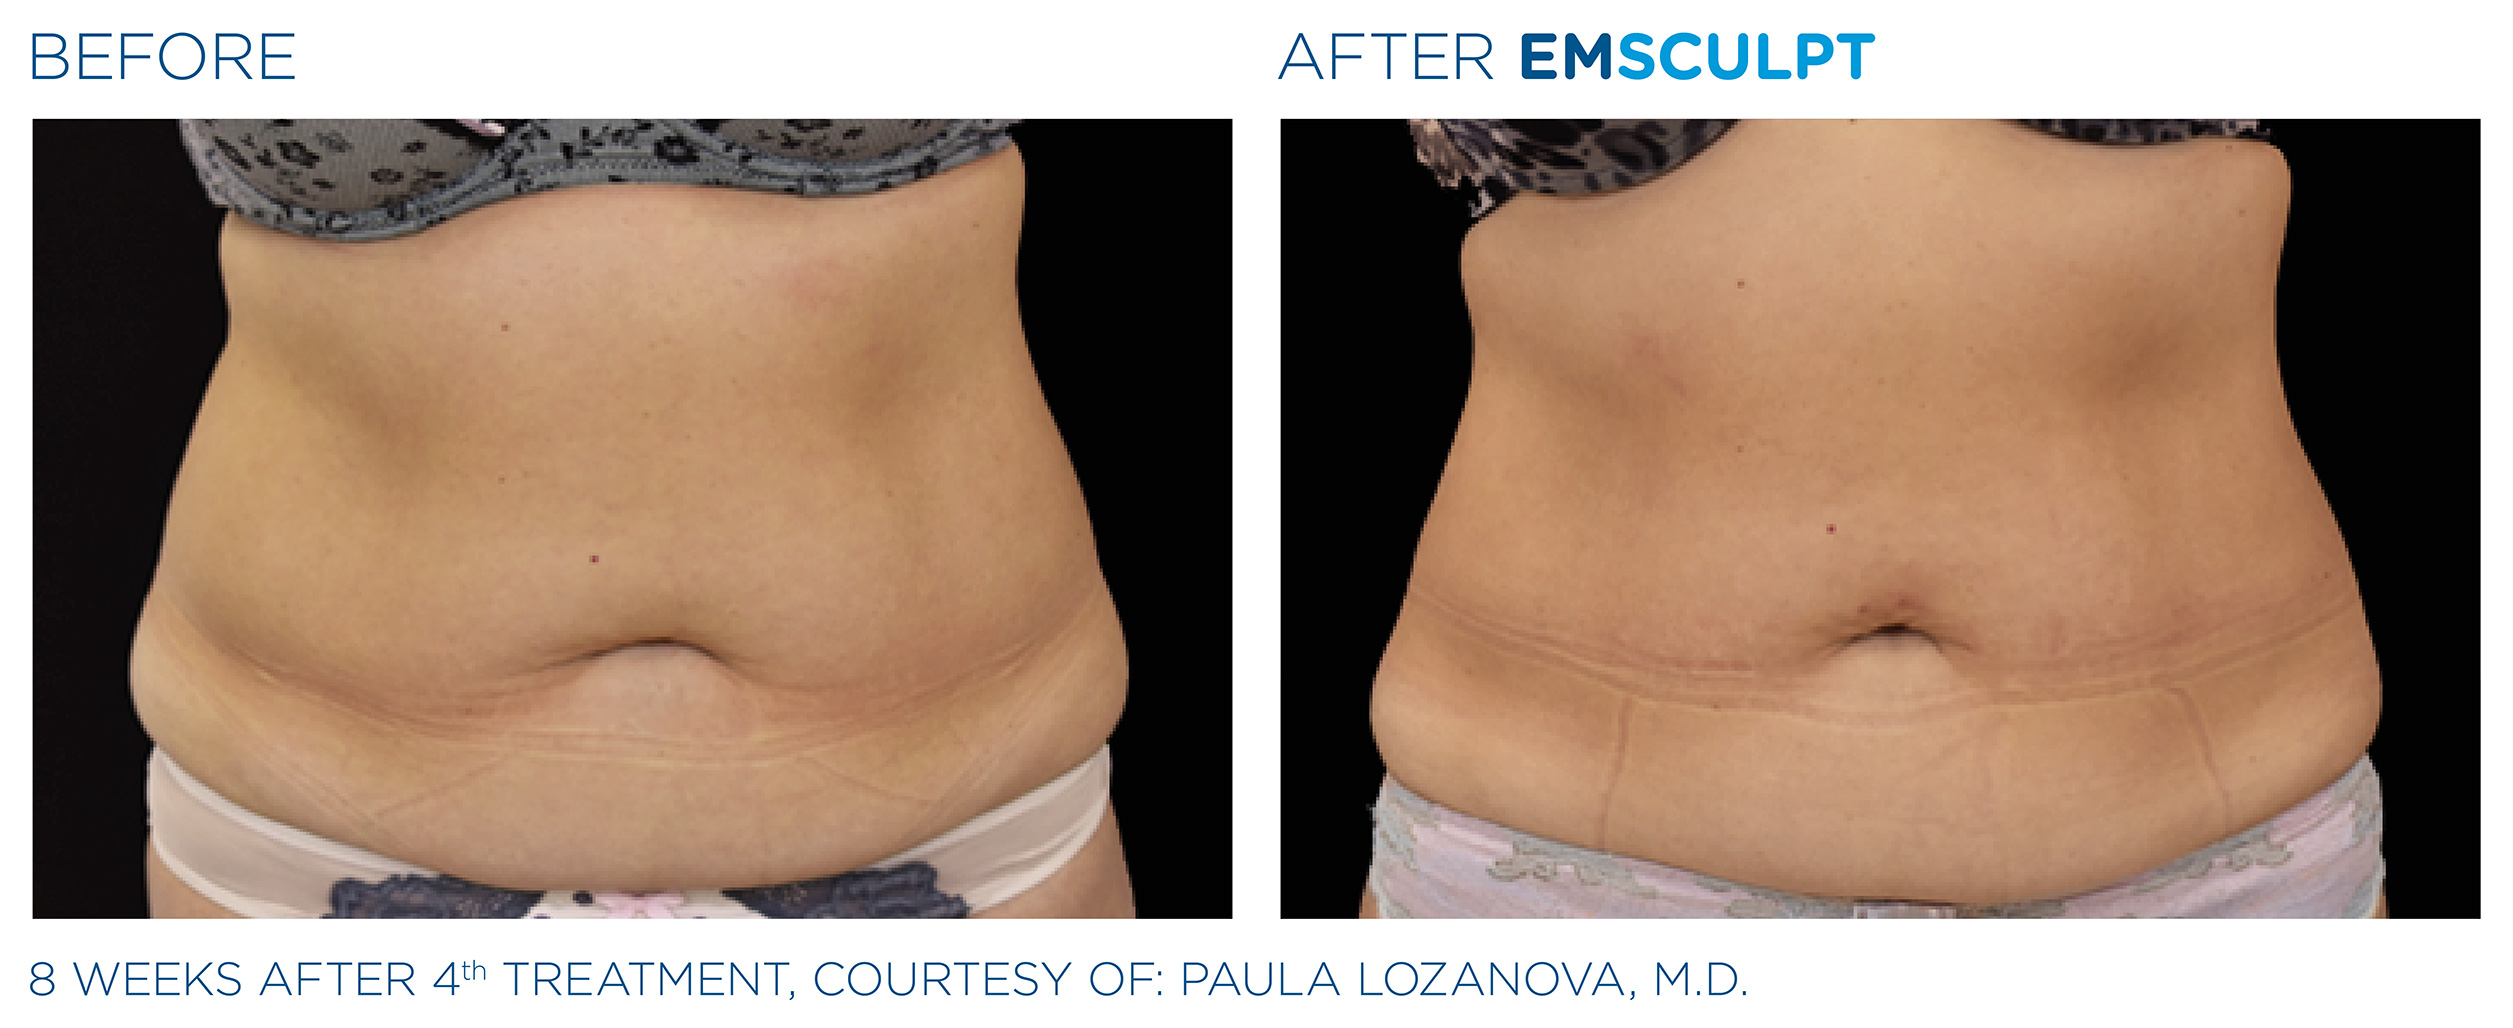 EMSCULPT Before & After Photos | Abdomen 10